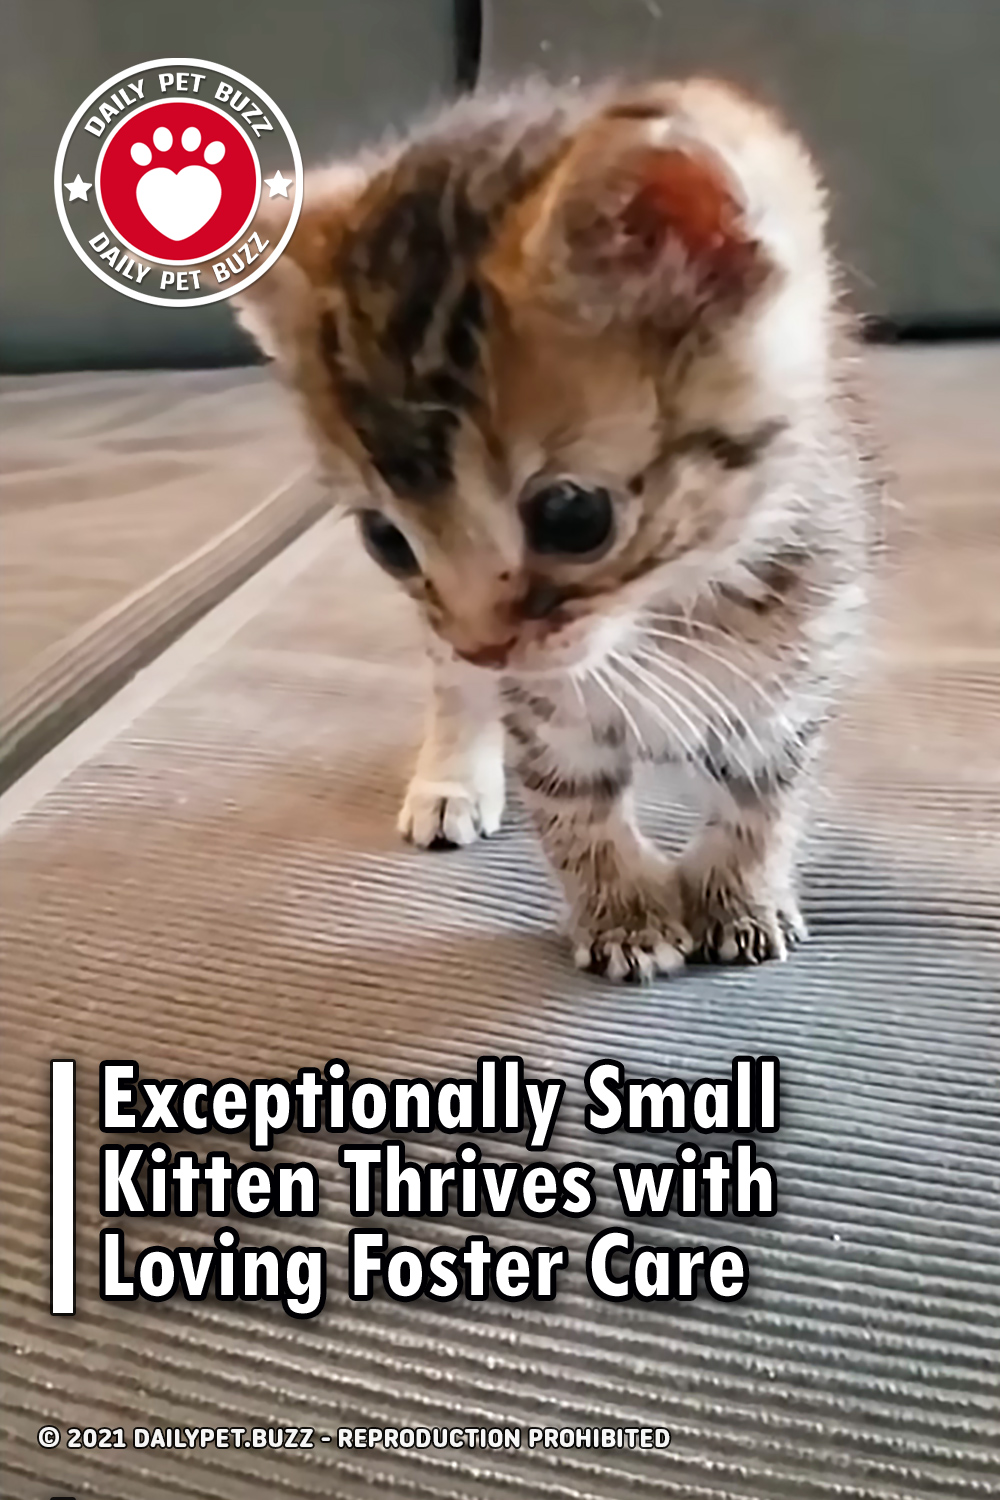 Exceptionally Small Kitten Thrives with Loving Foster Care